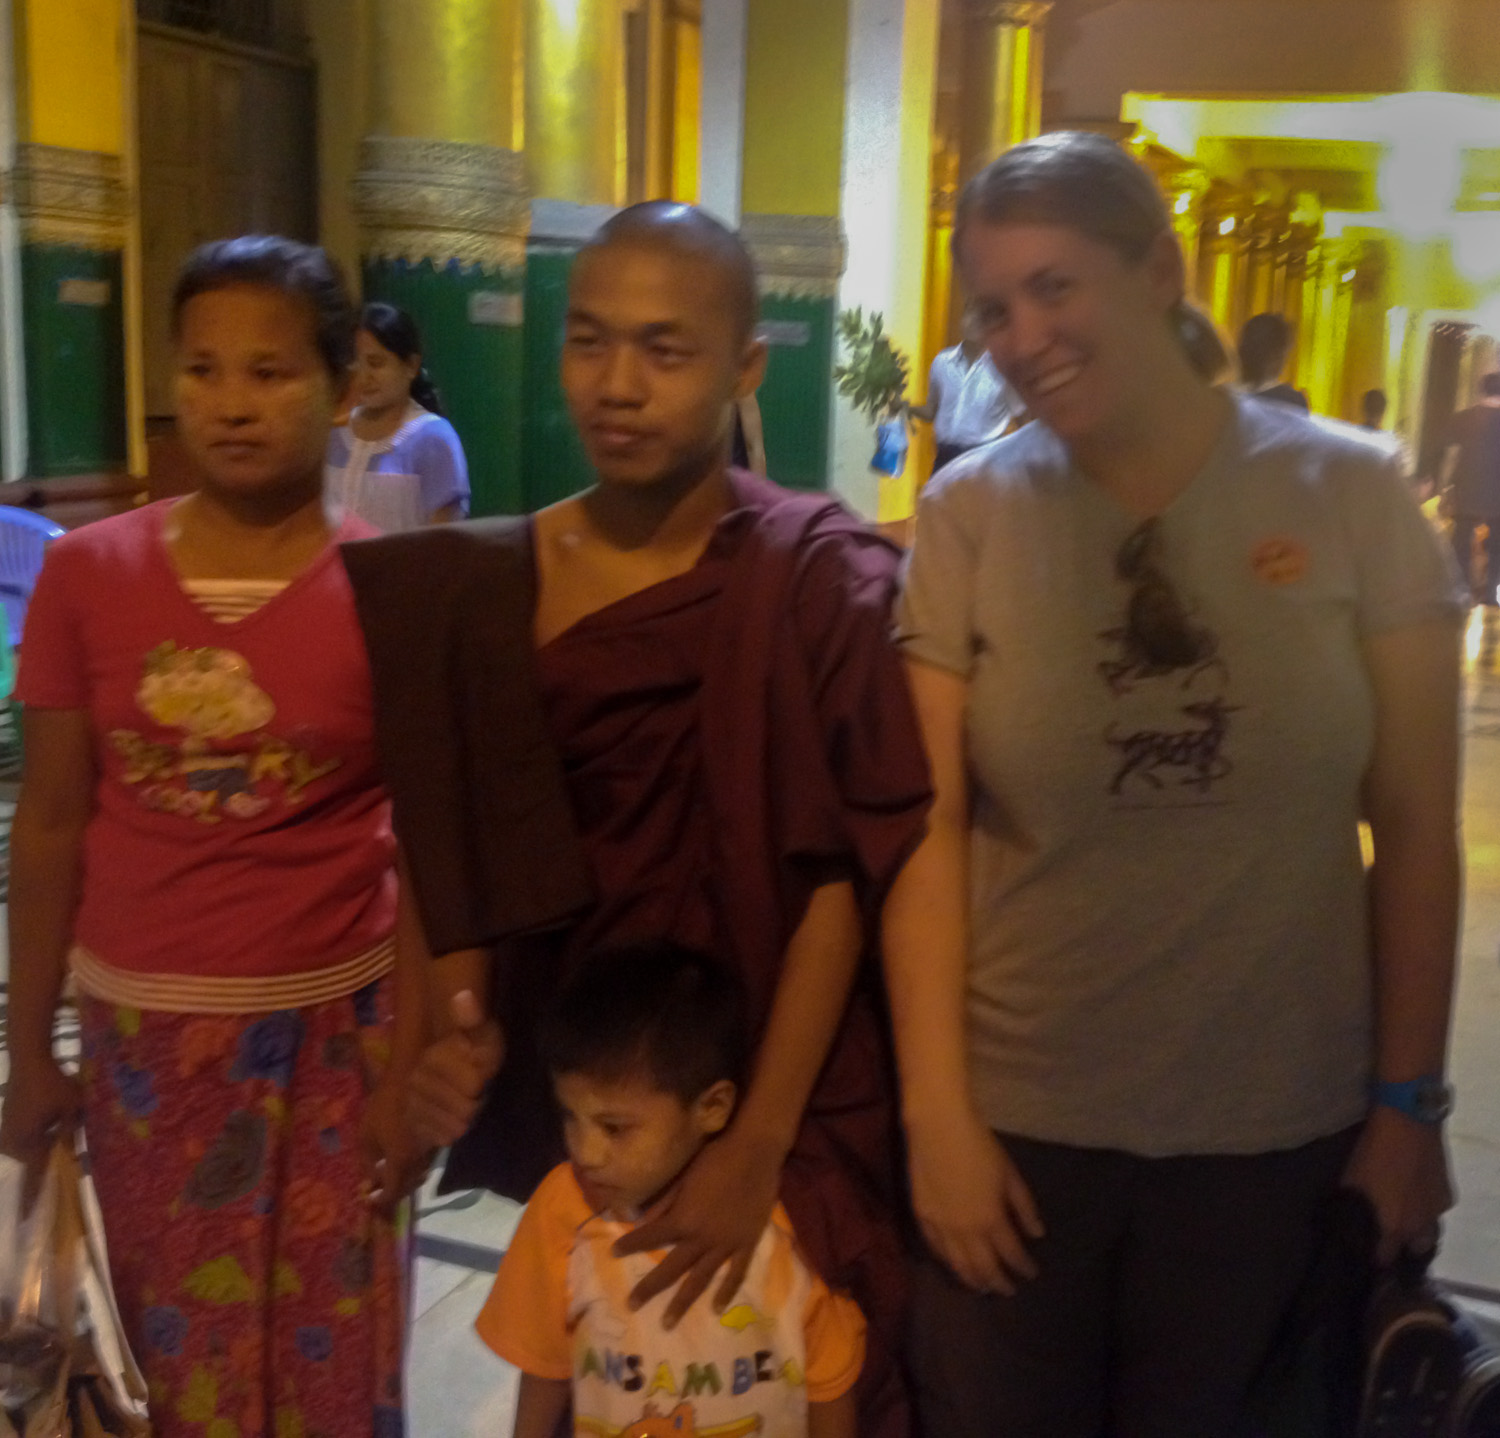 Posing for a photo with a monk in Myanmar.